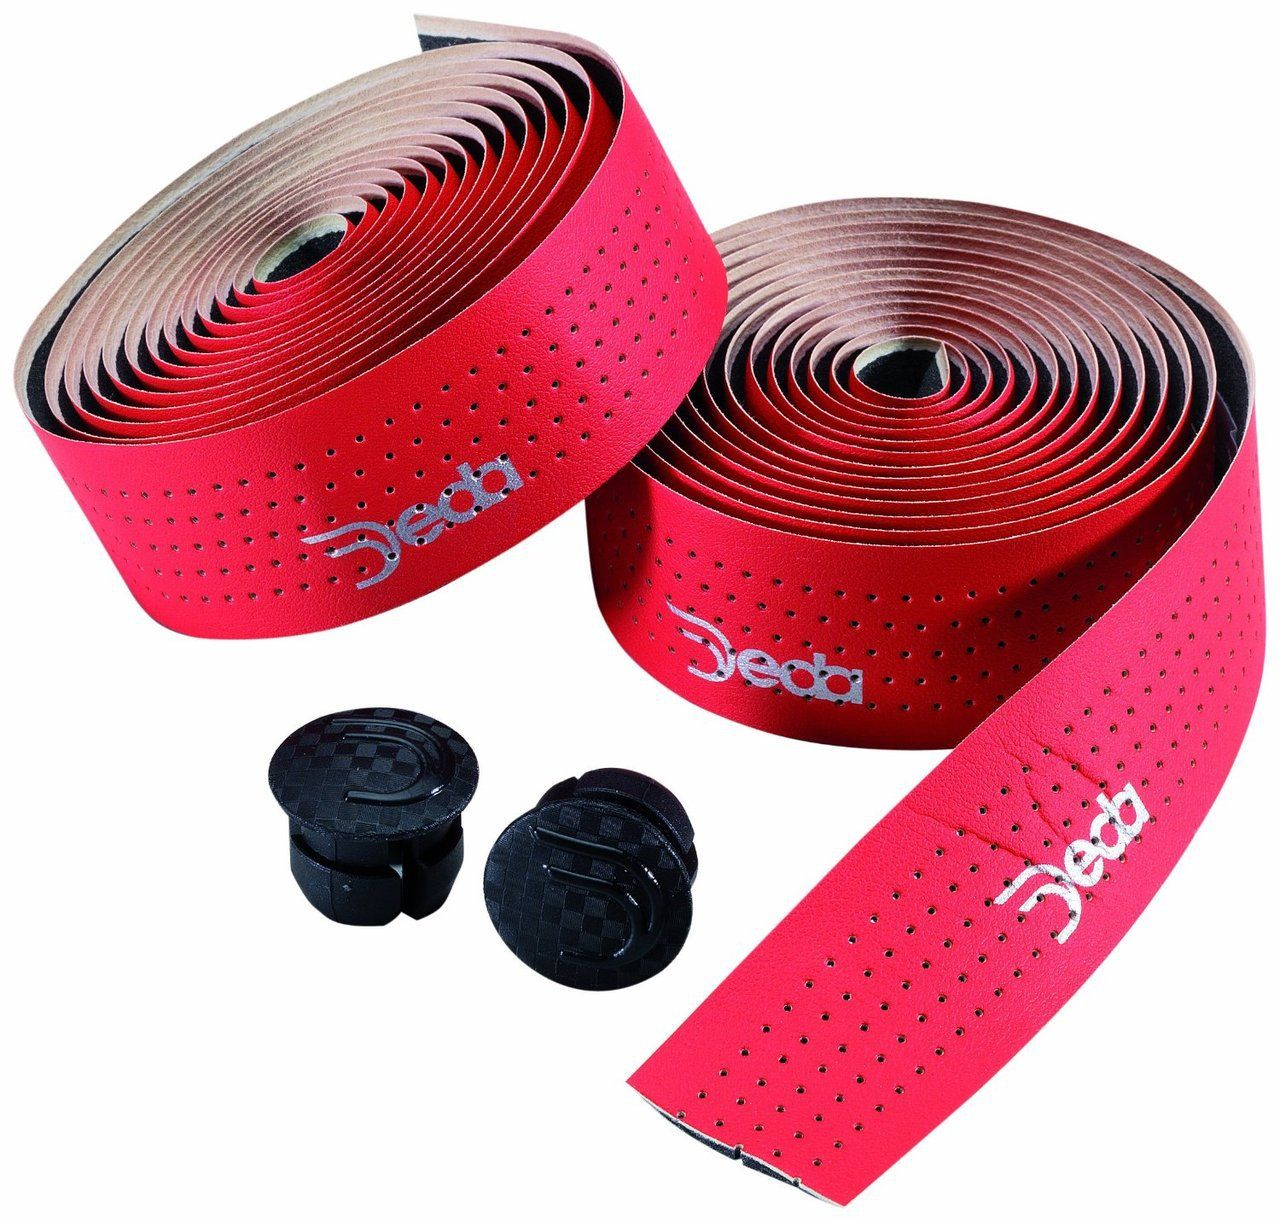 Deda Elementi Mistral (Perforated) Bar Tape - Red